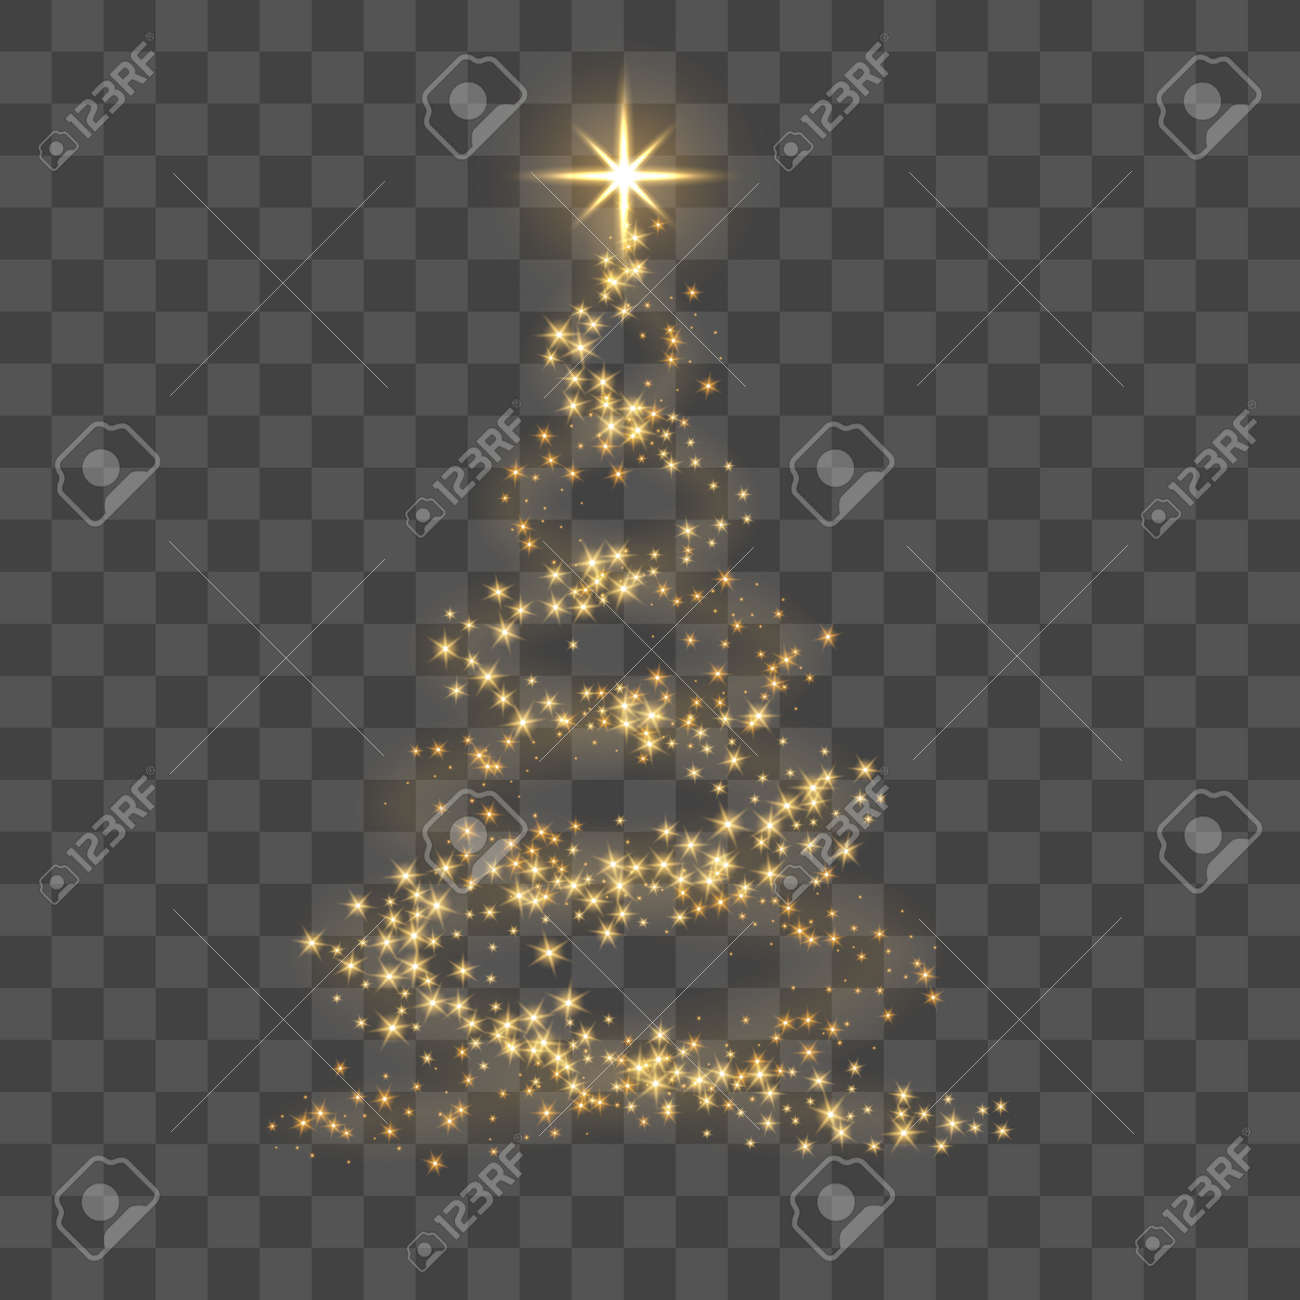 Christmas Tree Clipart Transparent Background.Christmas Tree On Transparent Background Gold Christmas Tree